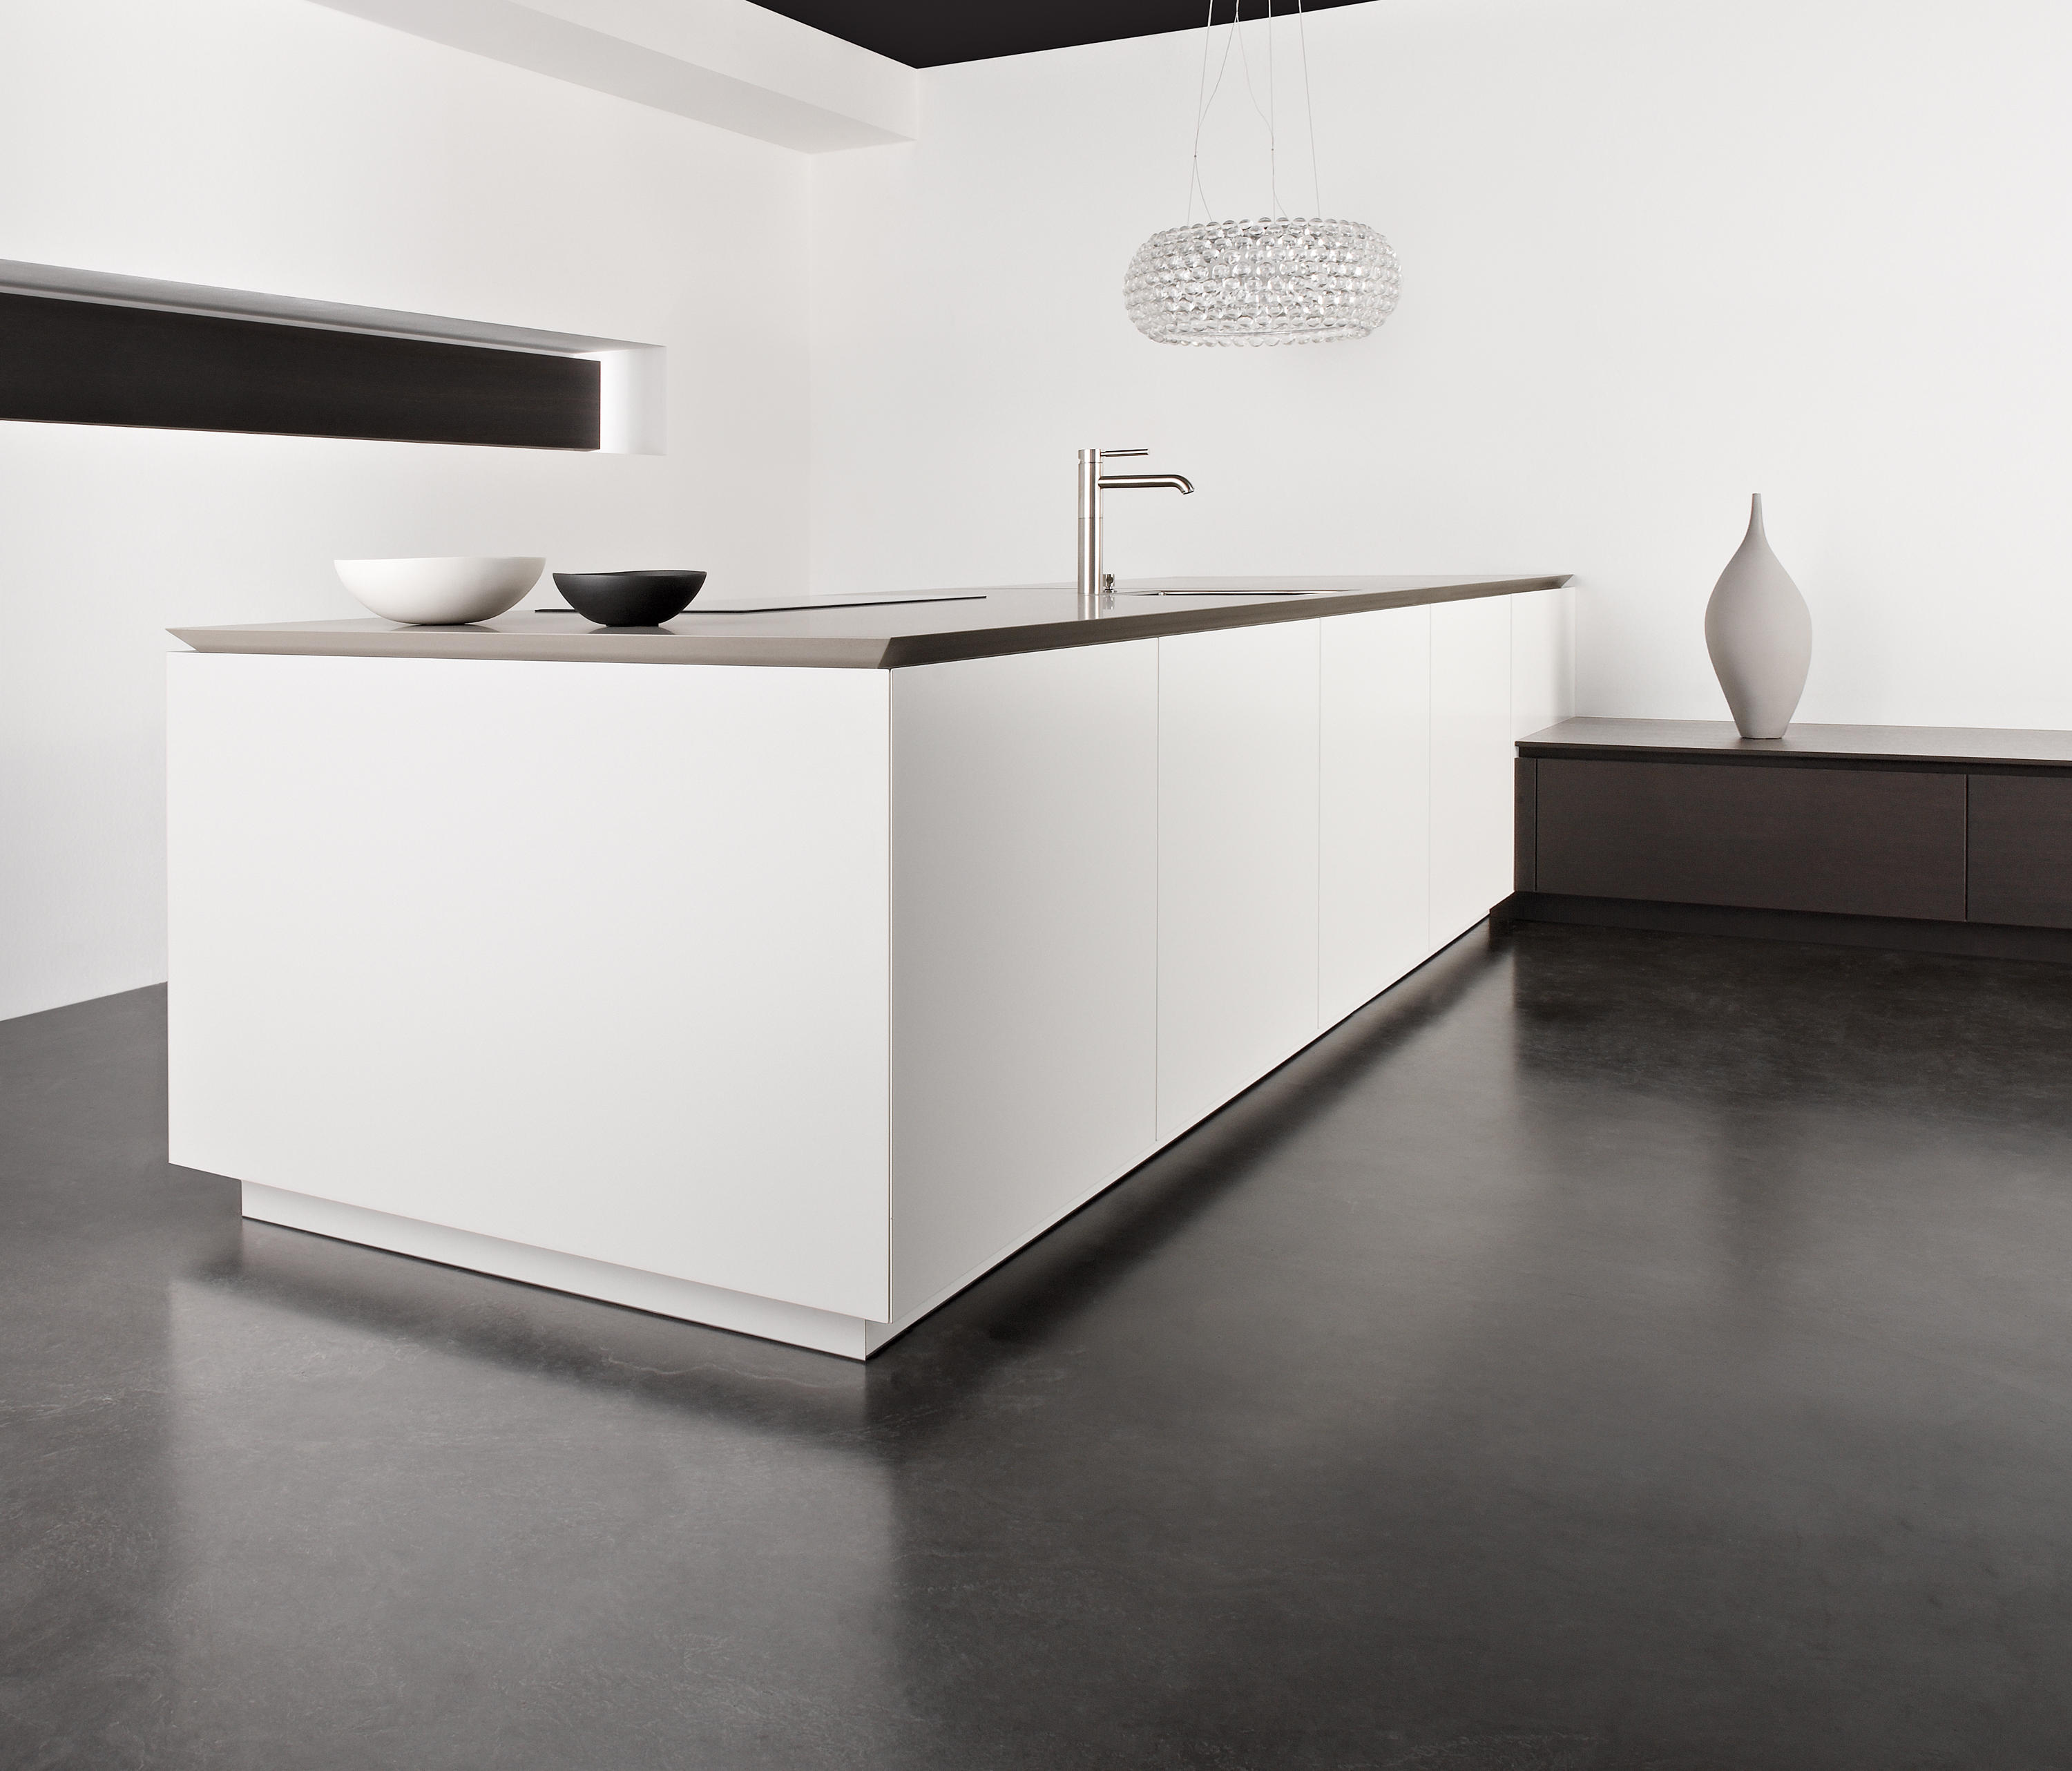 MATT LAQUER - Island kitchens from eggersmann | Architonic